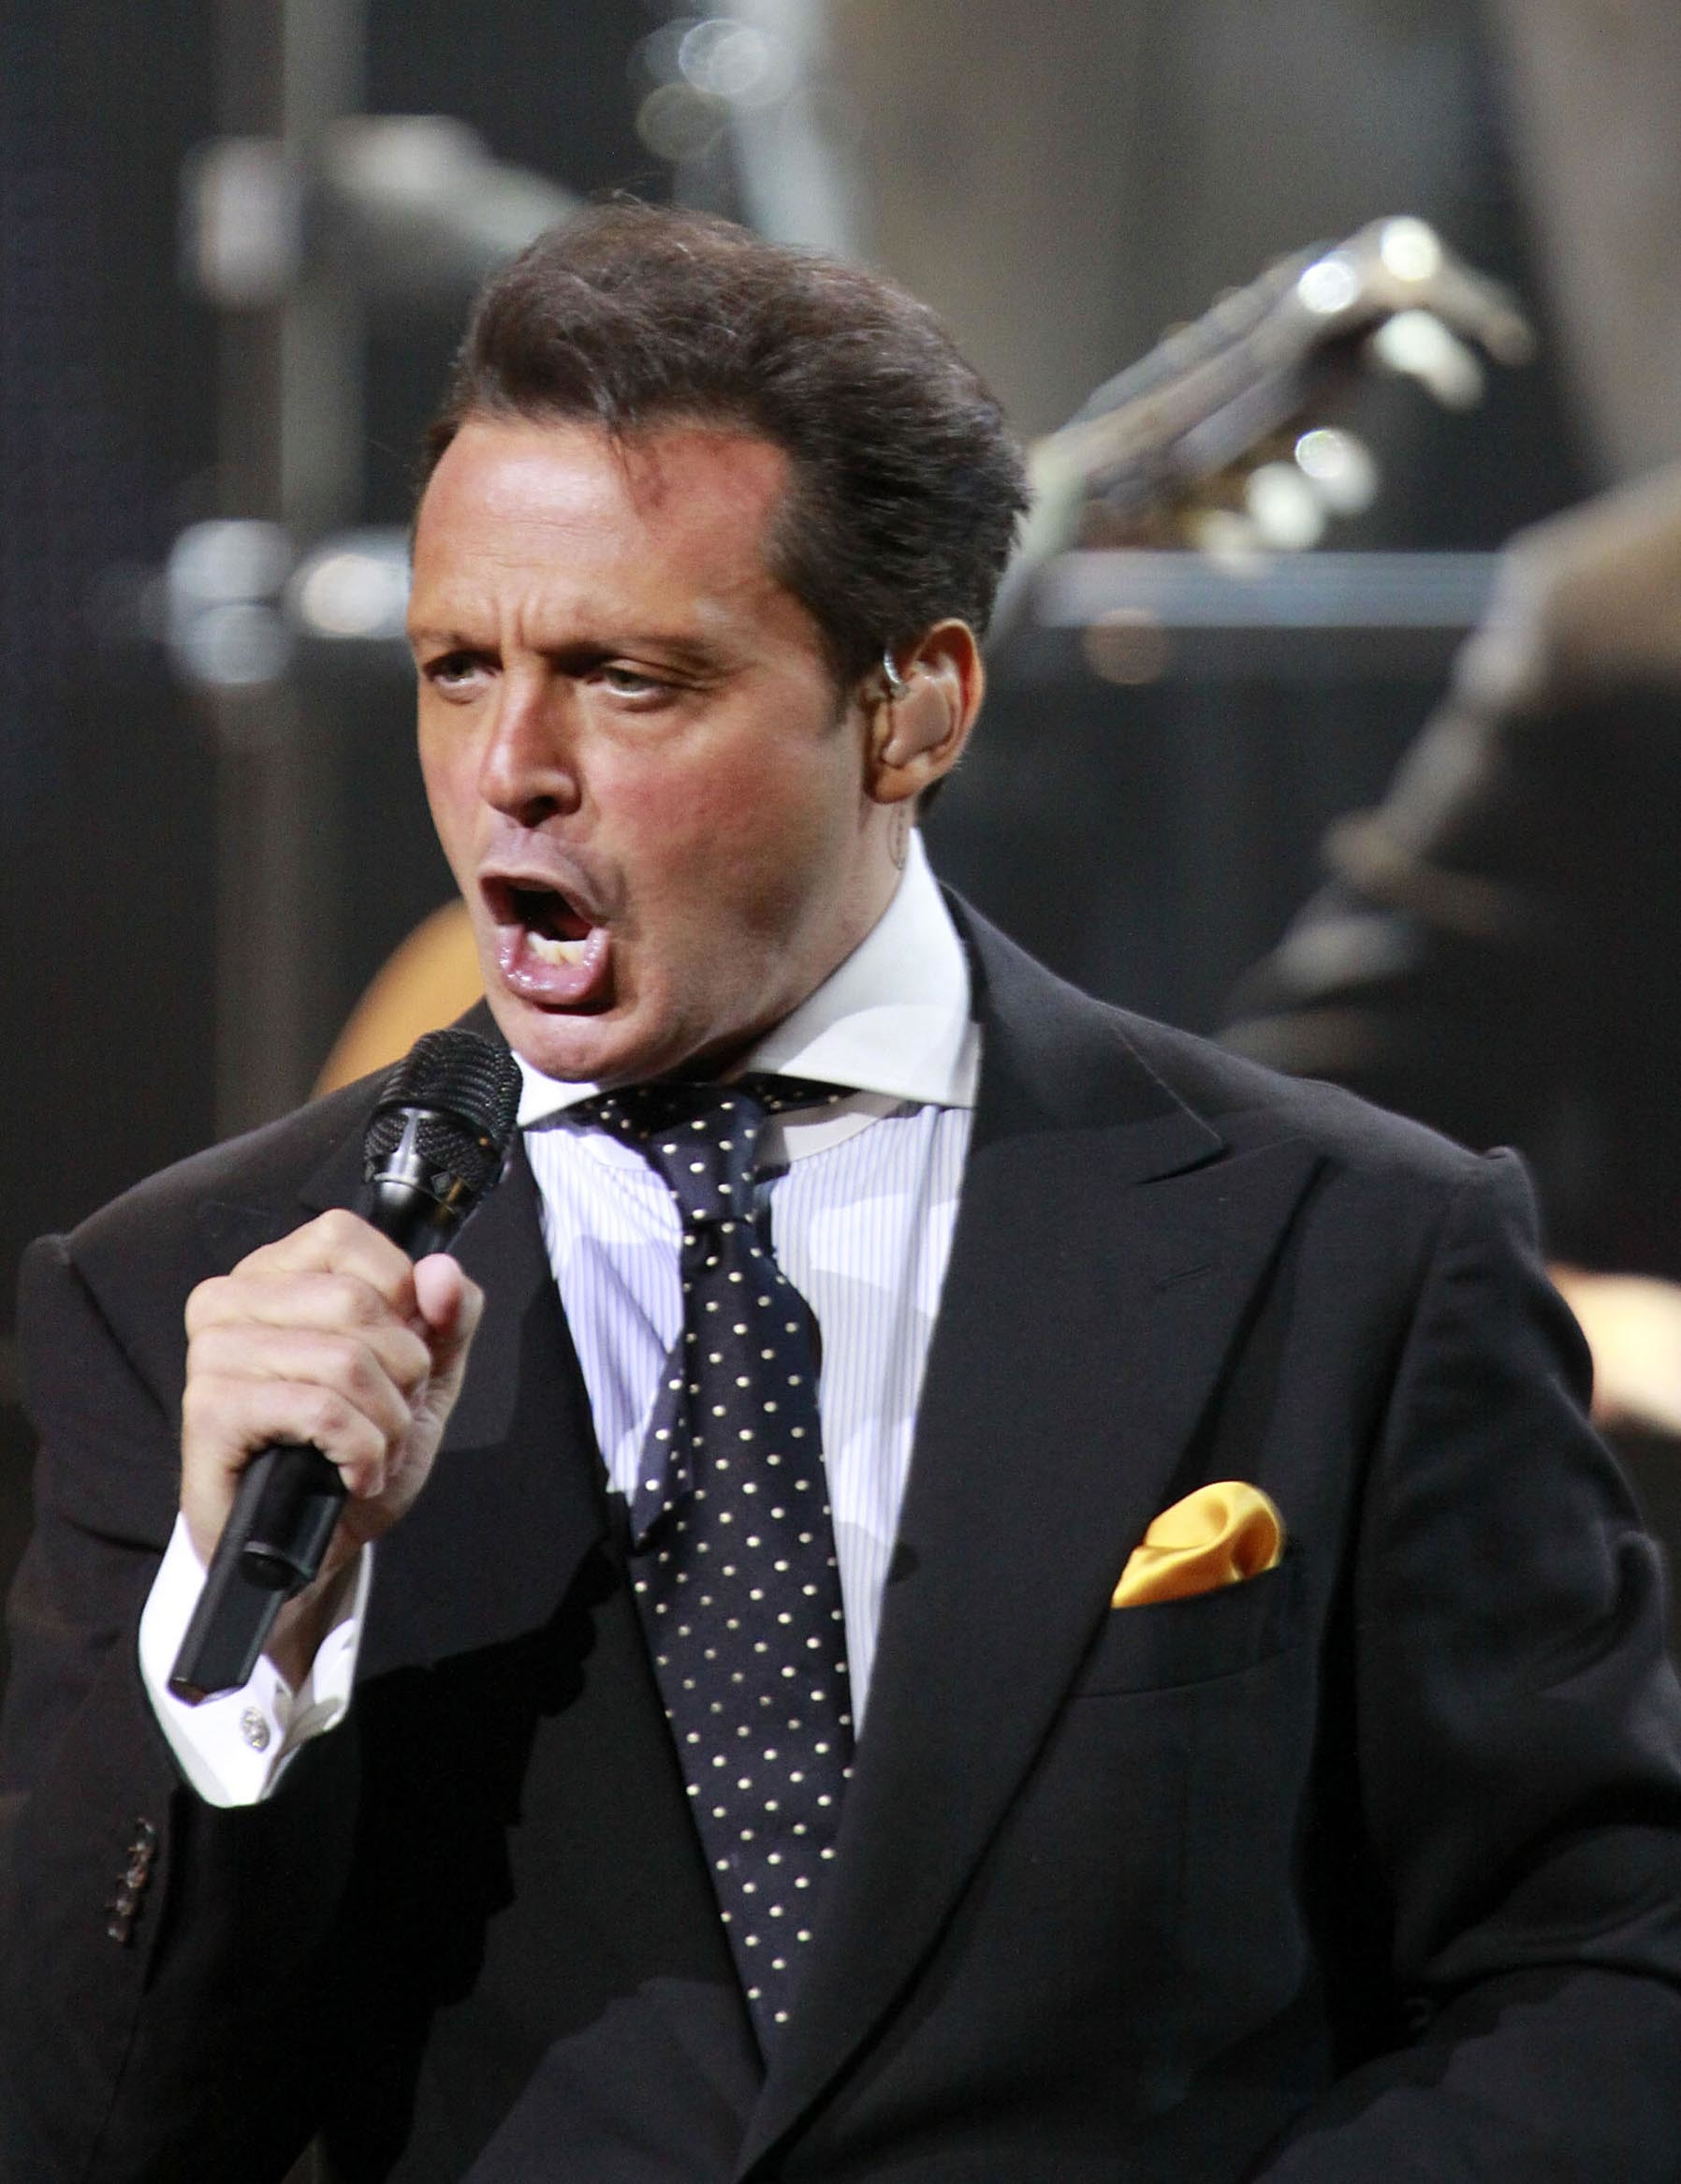 LUIS MIGUEL PERFORMING IN LAS VEGAS